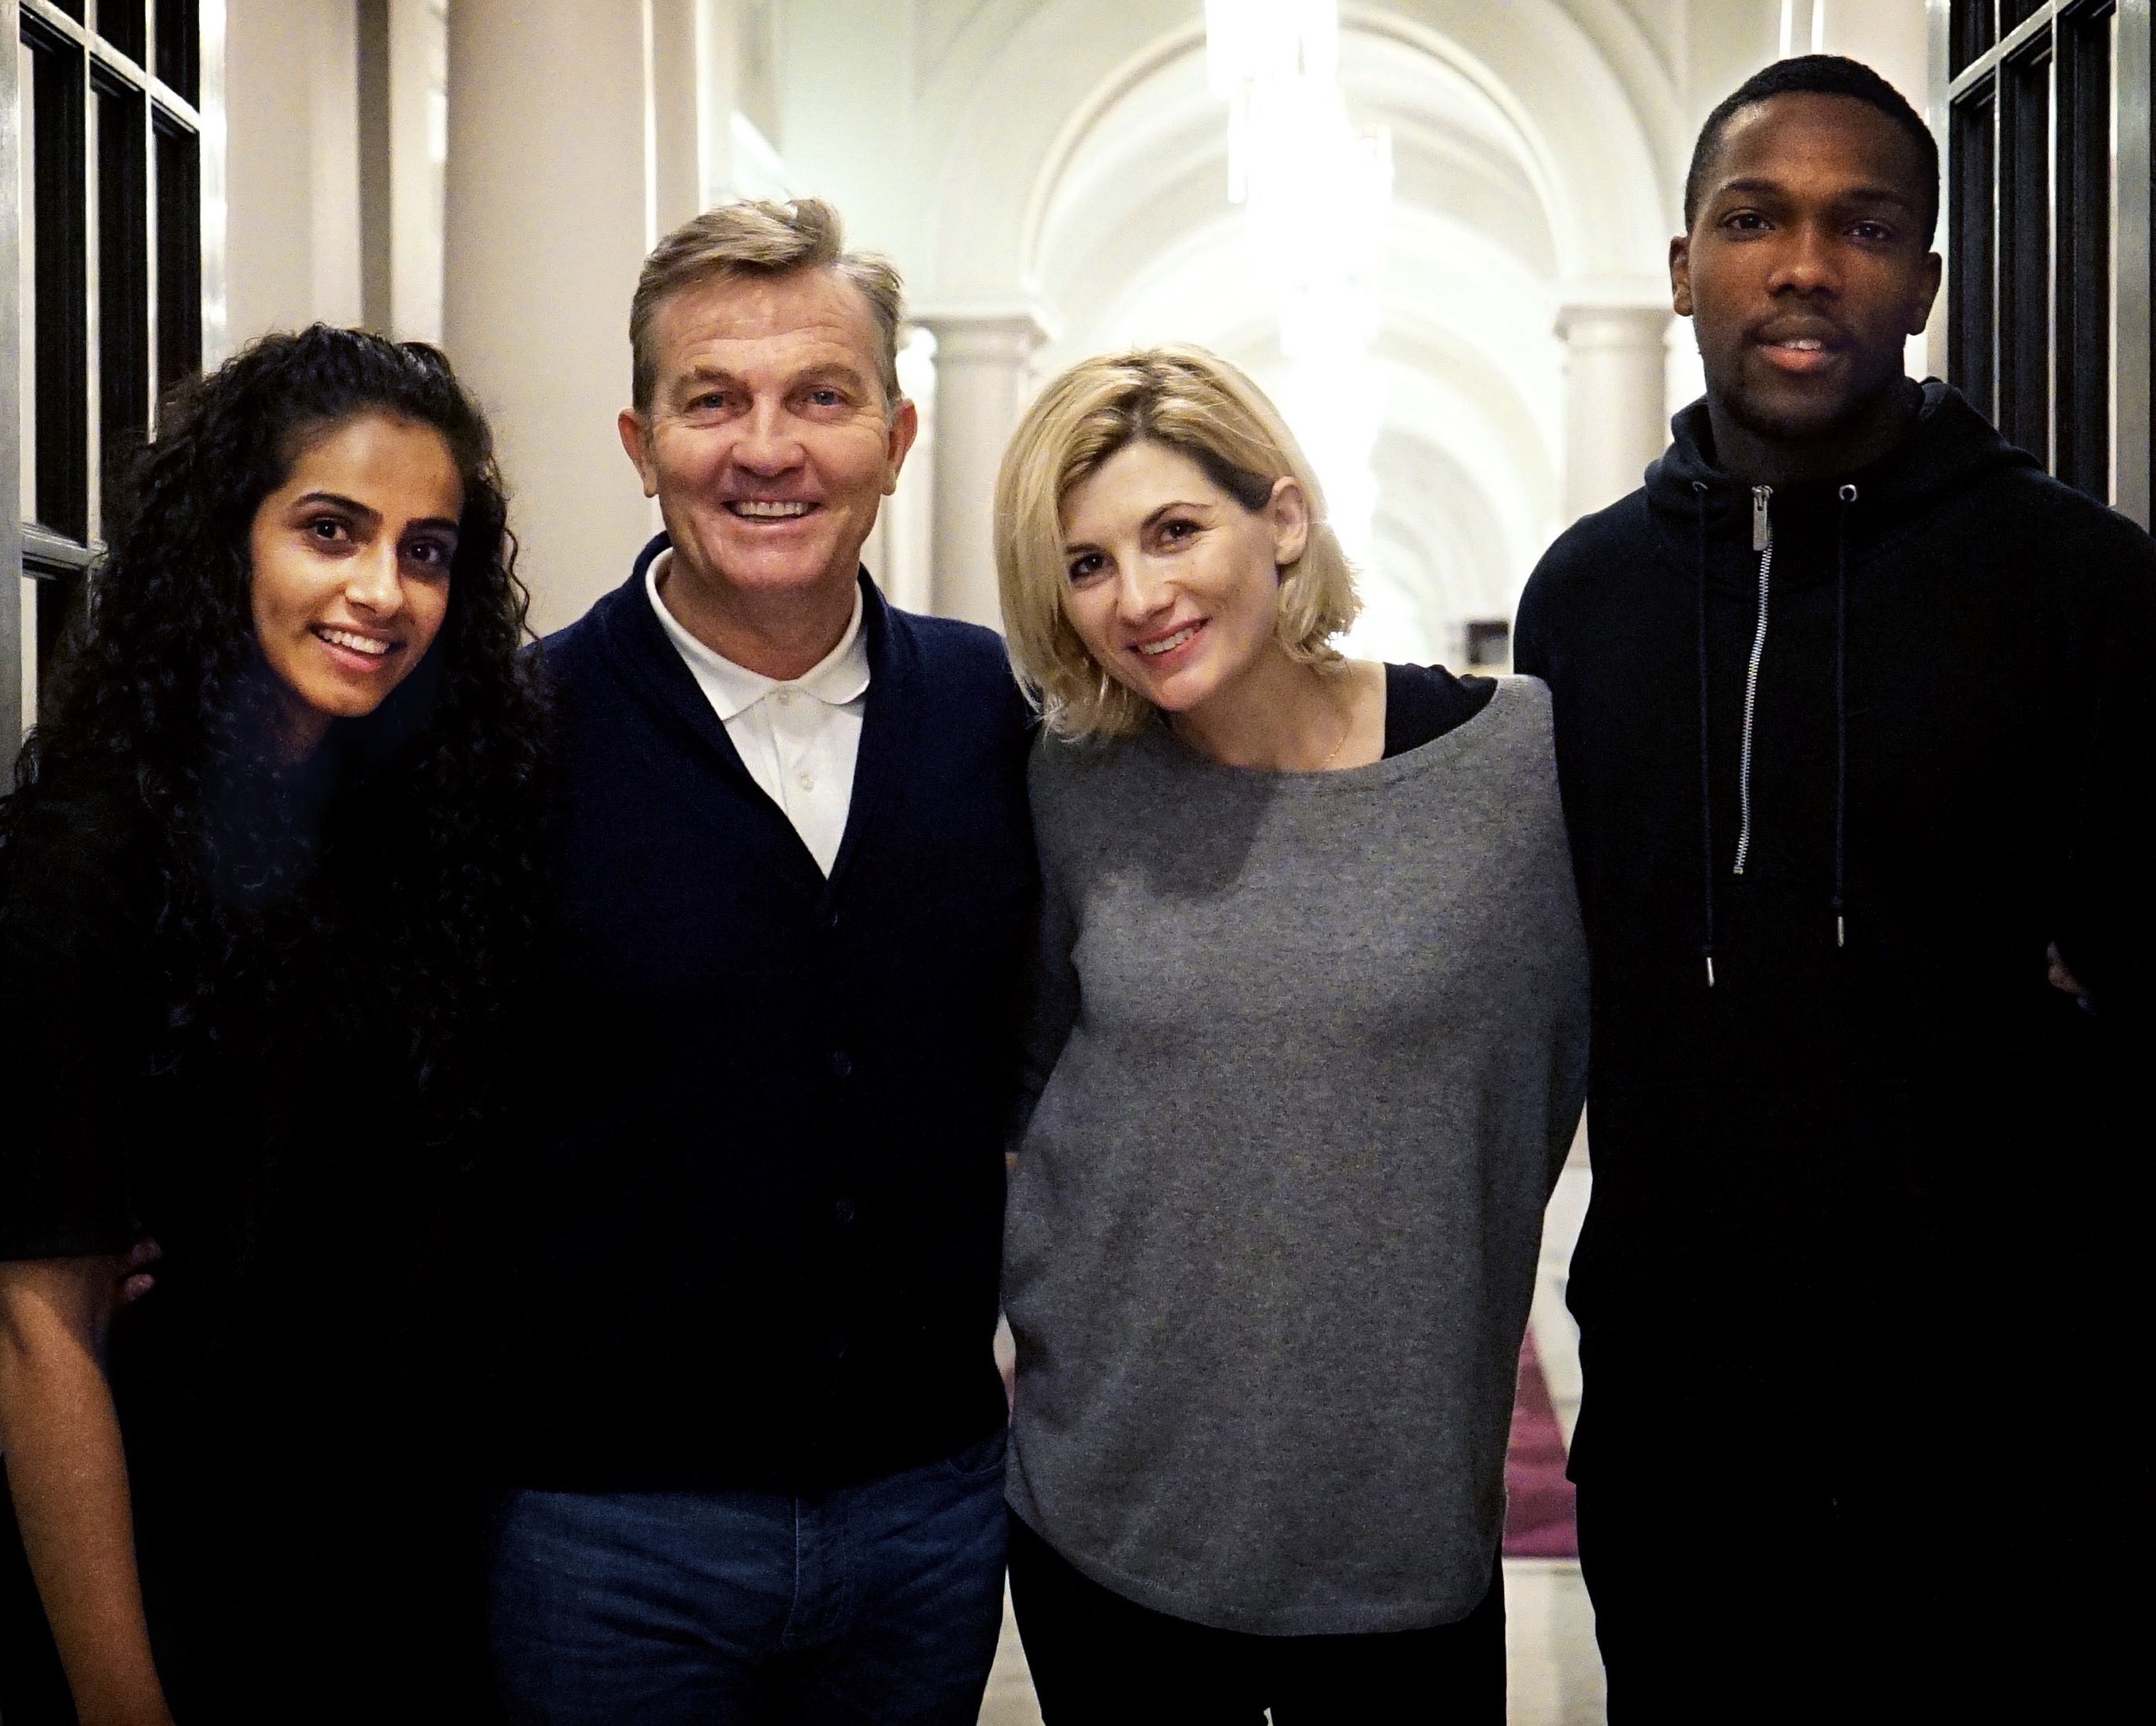 Meet the new TARDIS crew - Mandip Gill, Bradley Walsh, Jodie Whittaker, Tosin Cole (Credit: BBC)